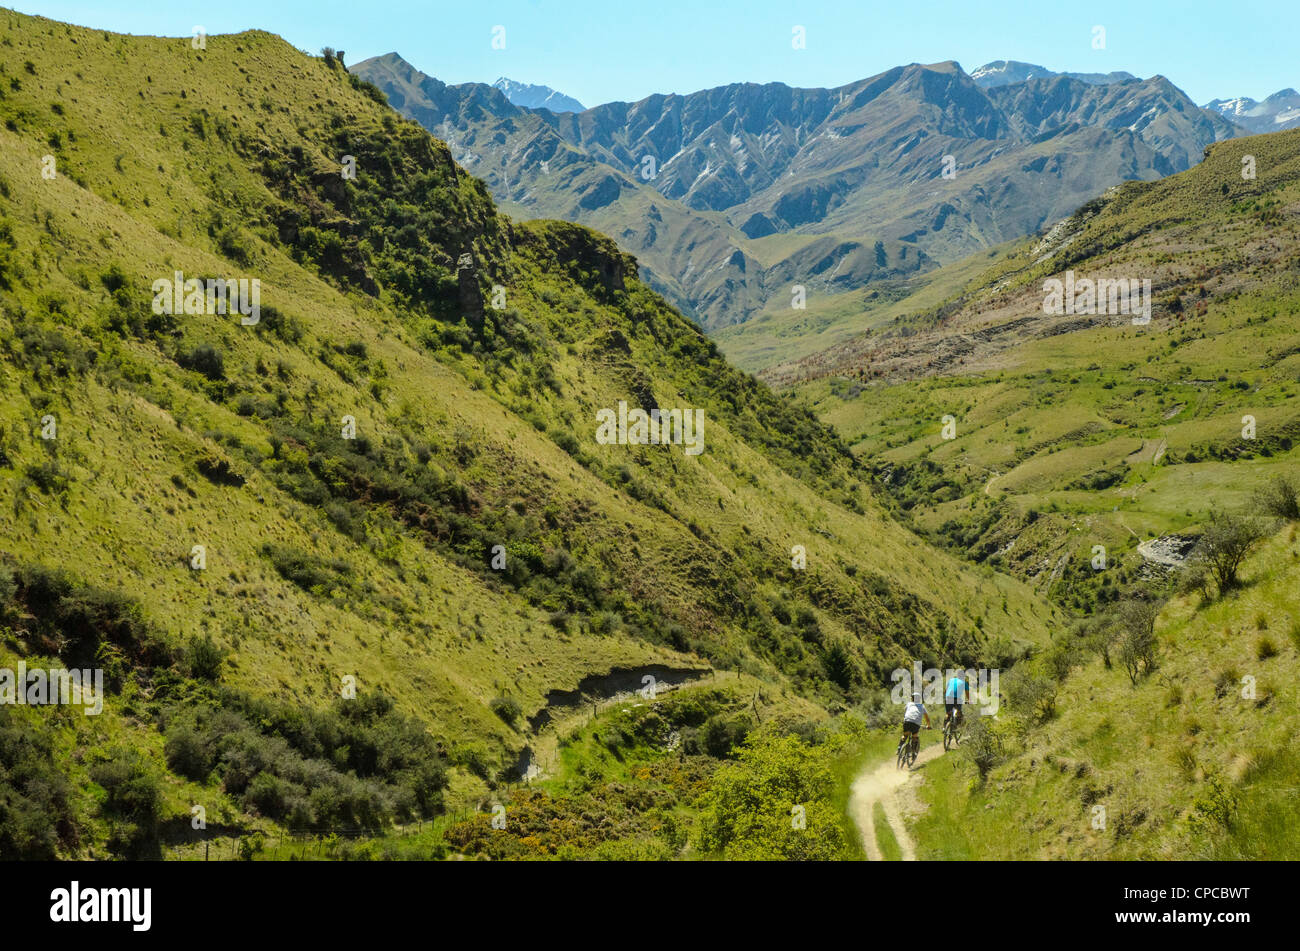 Mountain bikers descending the Pack Track, Skippers Canyon, near Queenstown, with Mt Aurum on the skyline, New Zealand - Stock Image